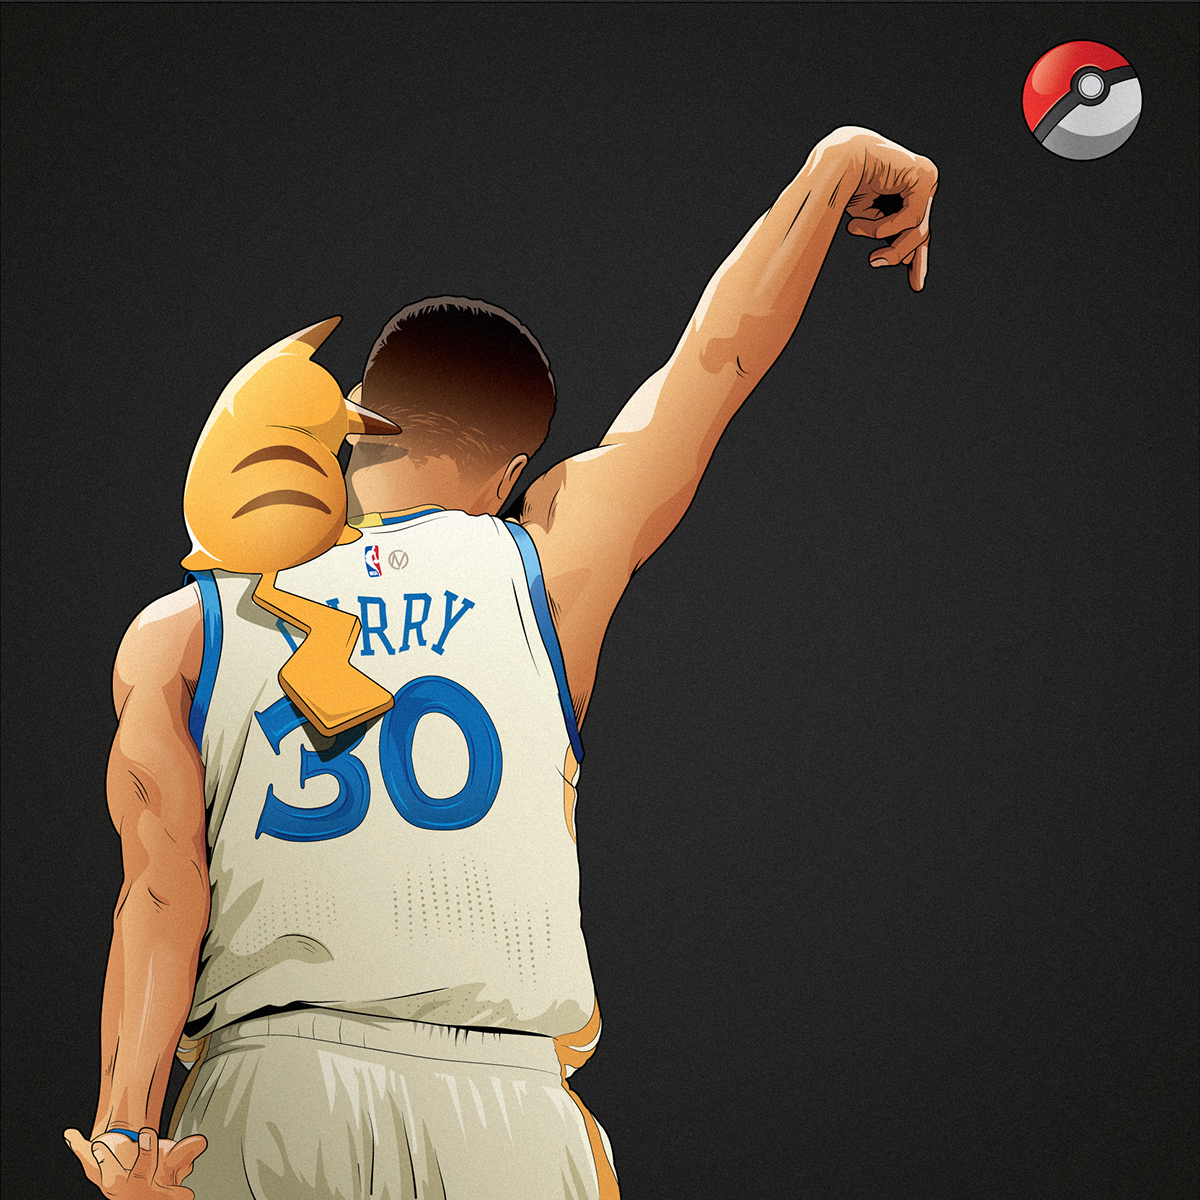 Stephen Curry x Pokemon Go Illustration